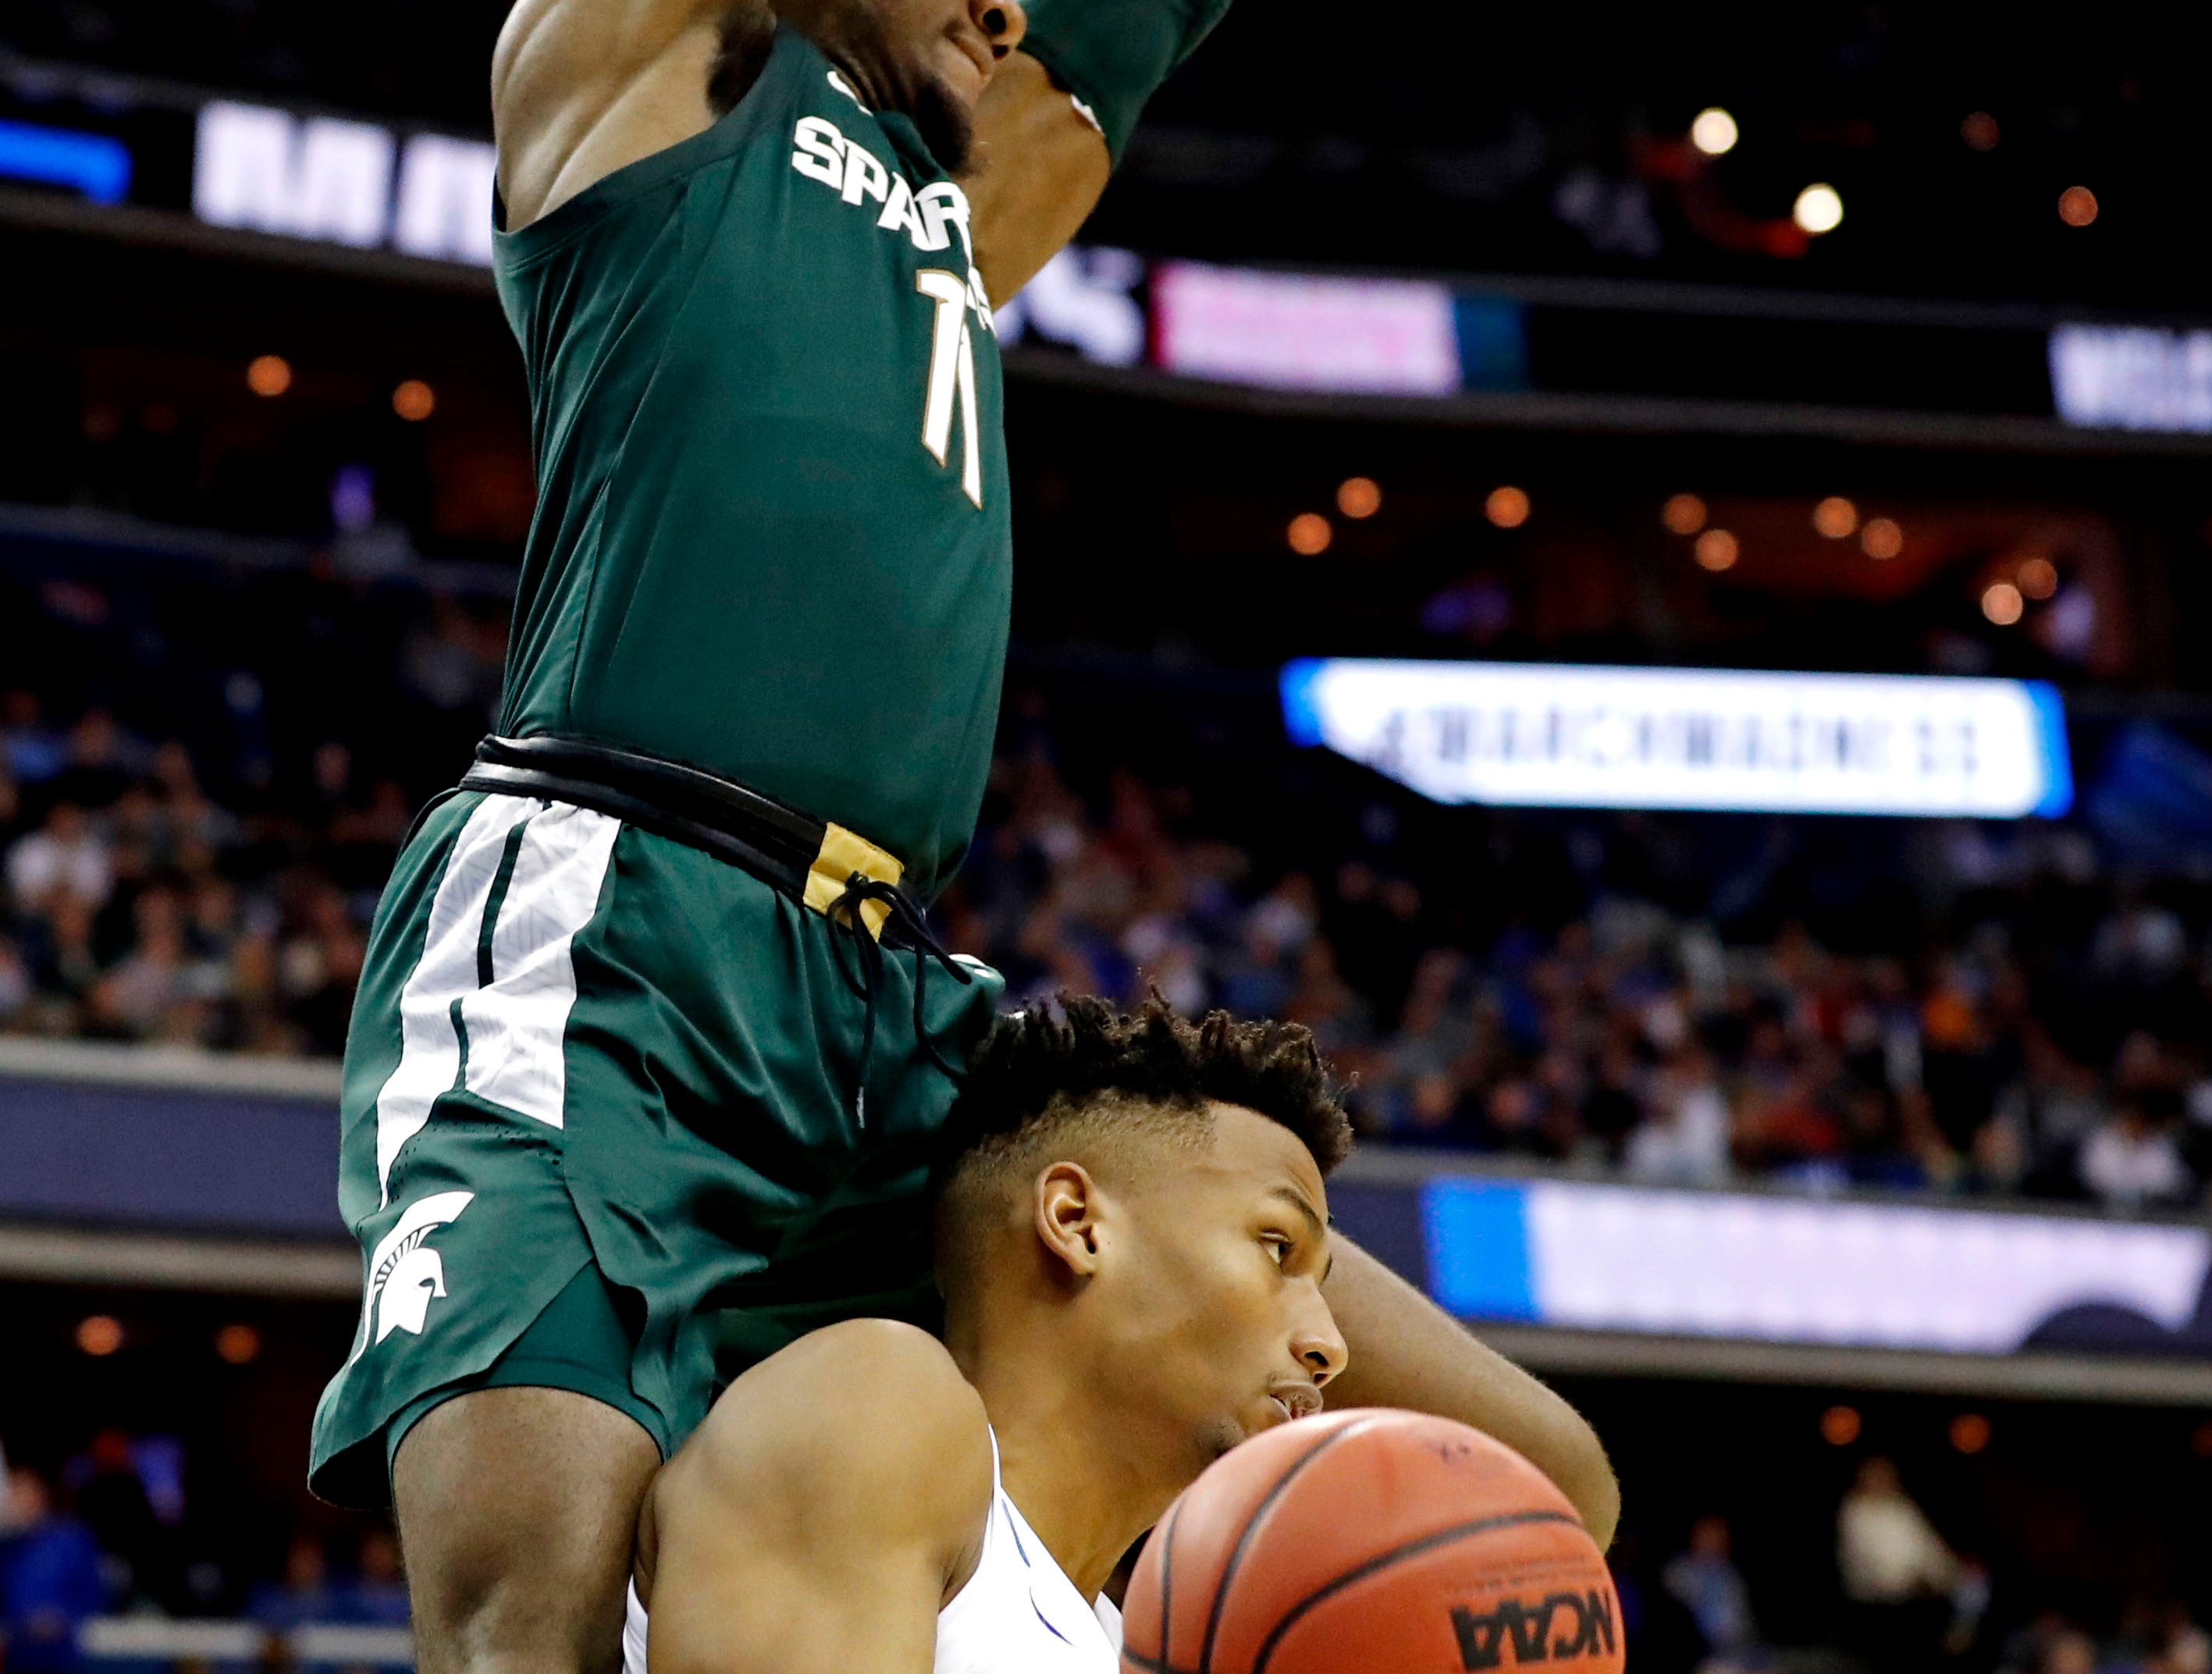 Mar 31, 2019; Washington, DC, USA; Michigan State Spartans forward Aaron Henry (11) dunks the ball against Duke Blue Devils forward Javin DeLaurier (12) during the second half in the championship game of the east regional of the 2019 NCAA Tournament at Capital One Arena. Mandatory Credit: Geoff Burke-USA TODAY Sports